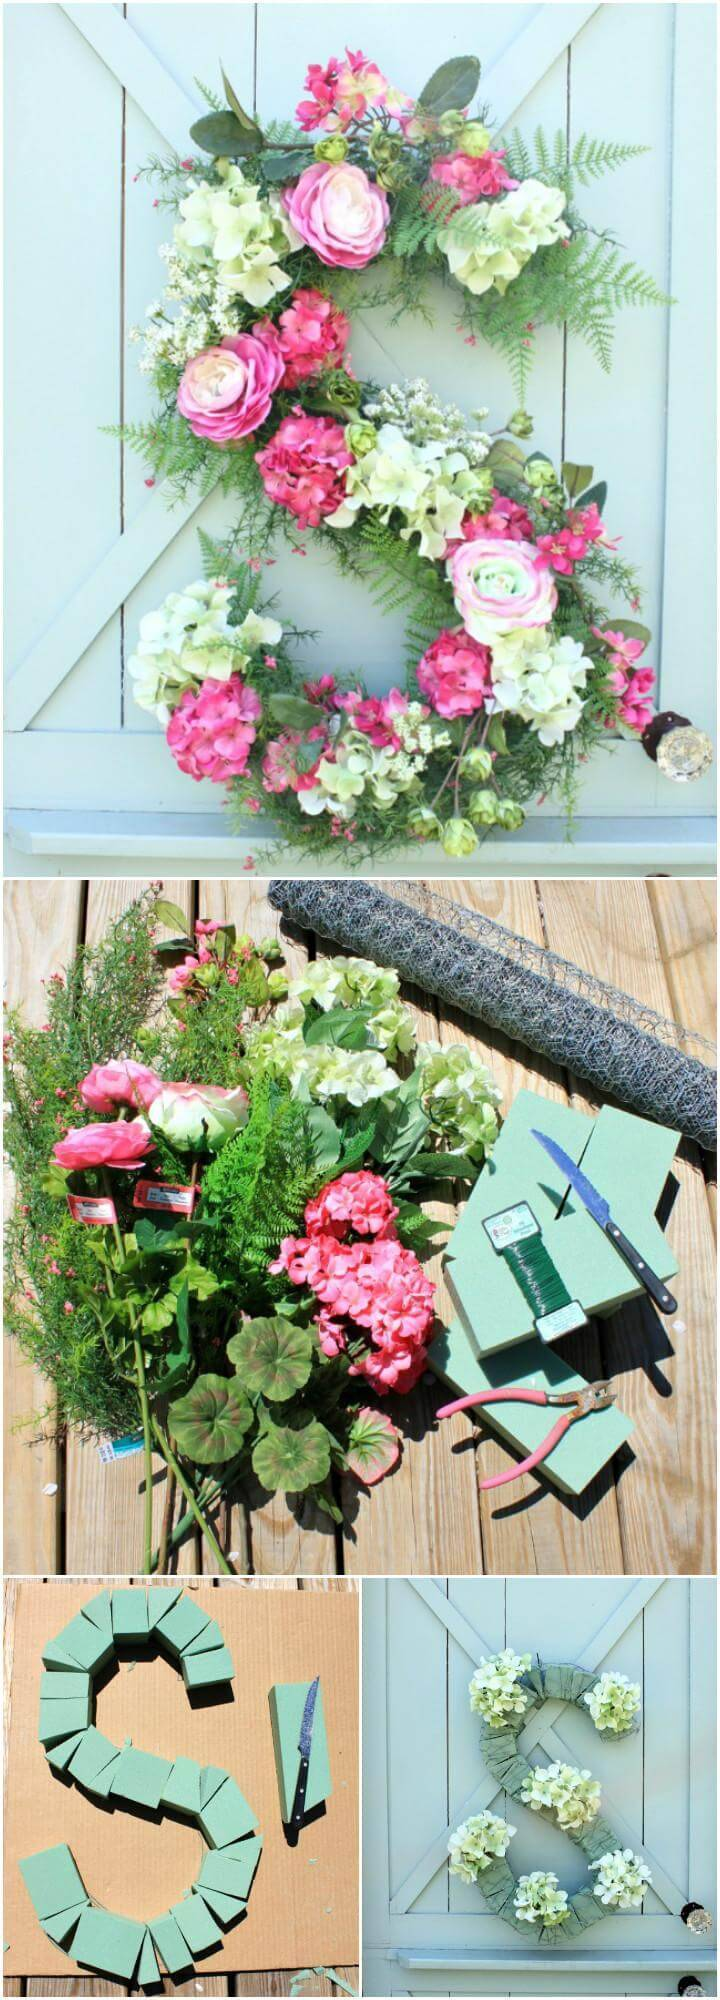 DIY Homemade Front Door Floral Monogram